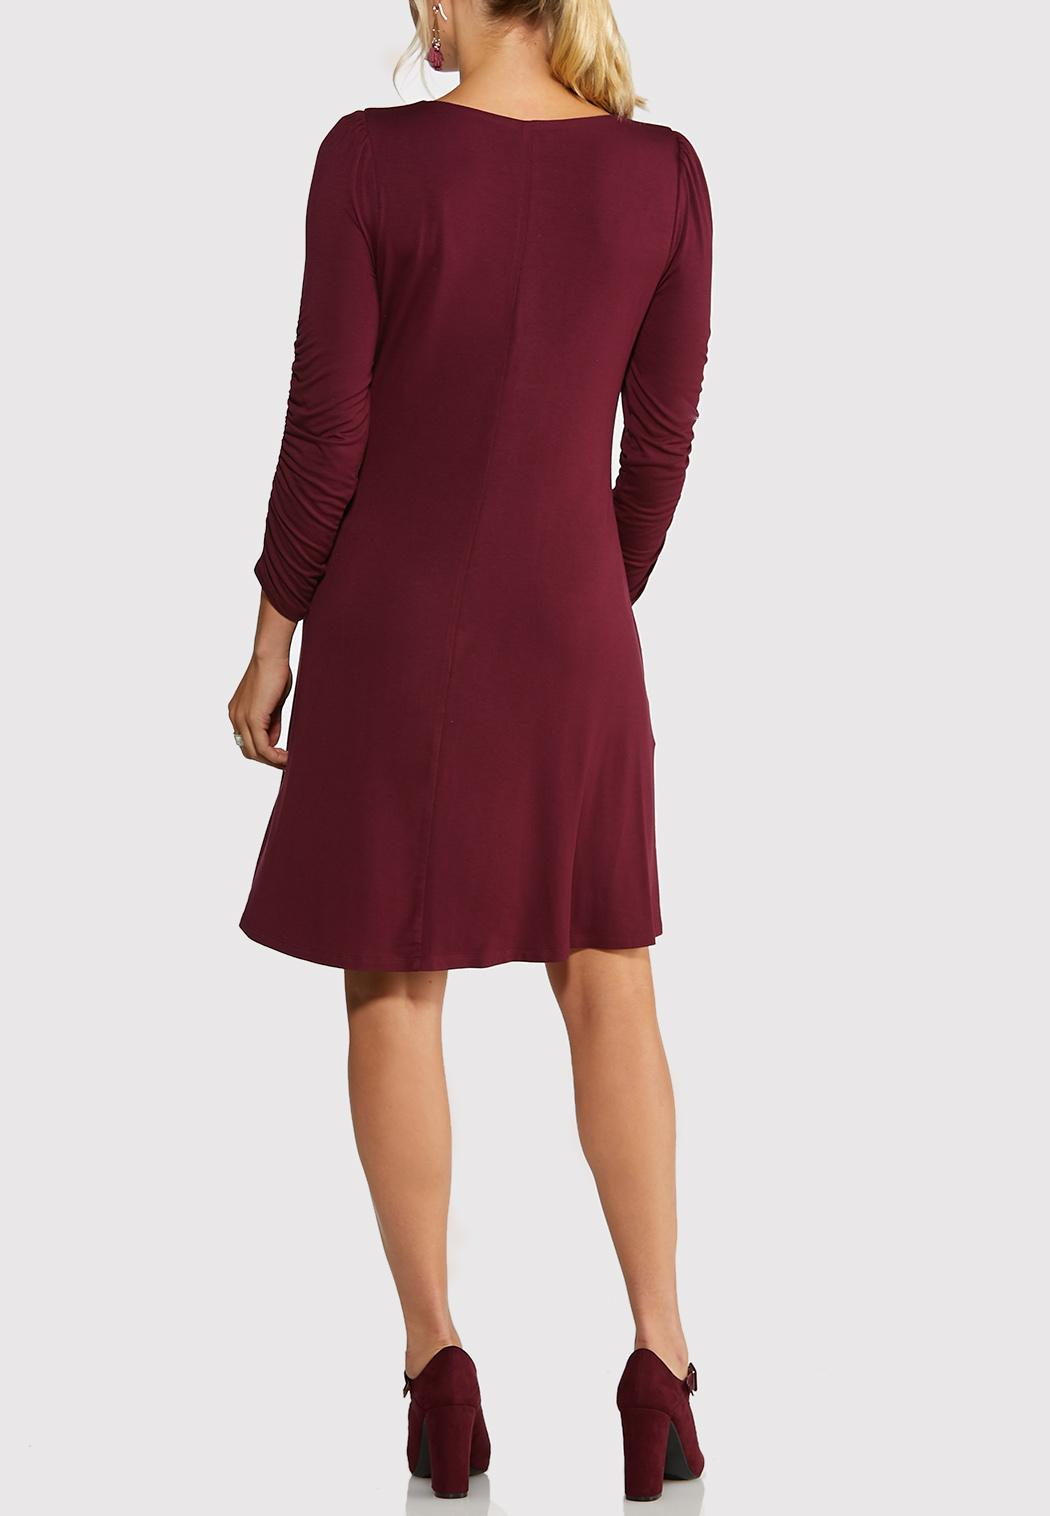 Plus Size Ruched Sleeve Swing Dress (Item #43979055)